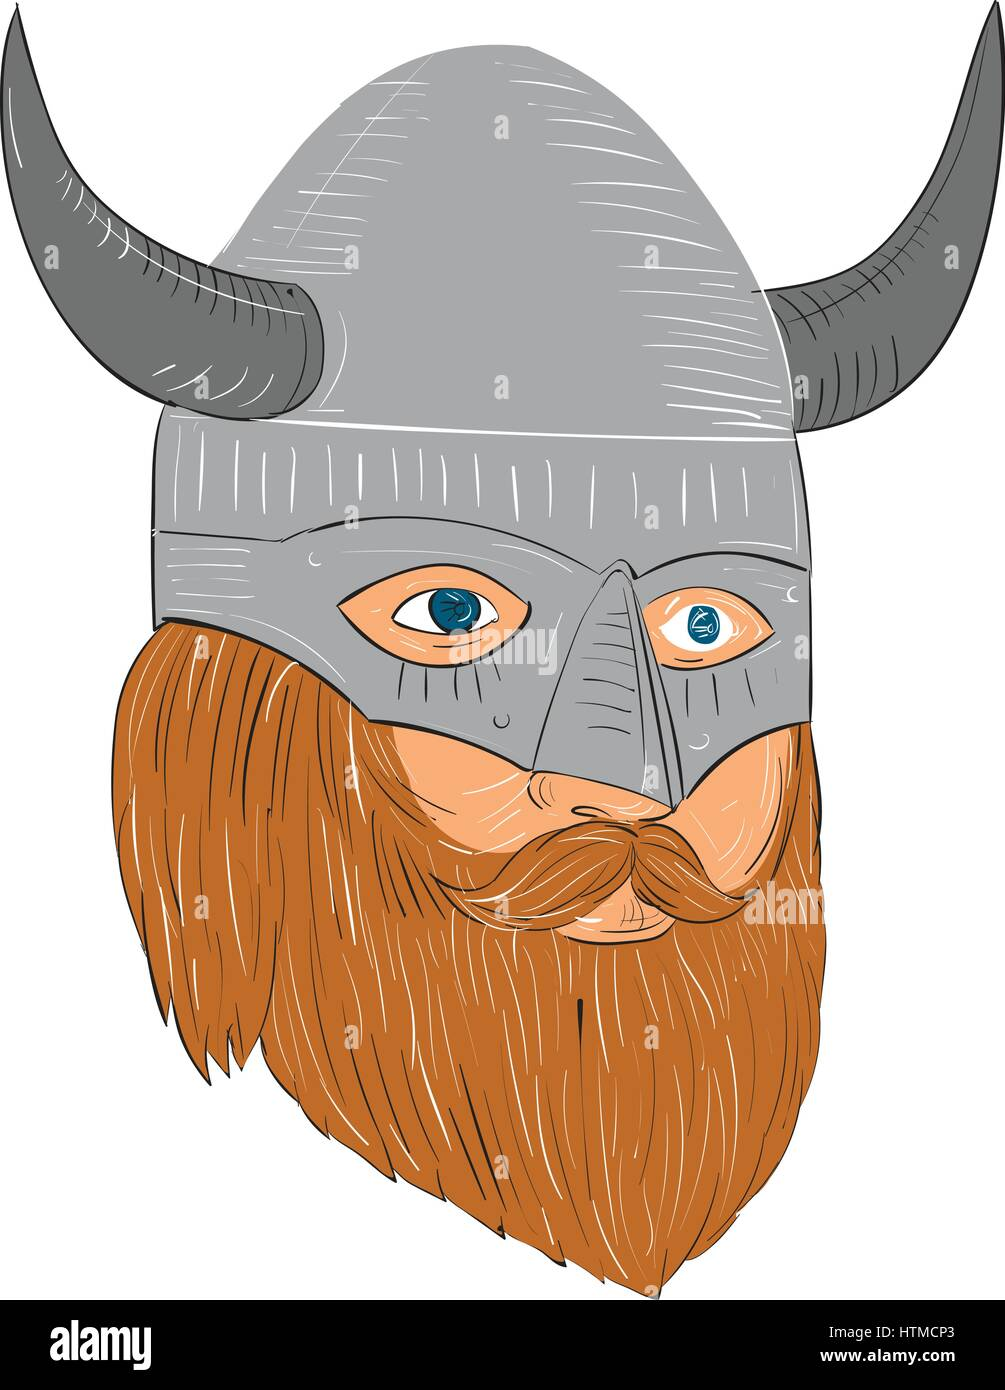 Drawing Sketch Style Illustration Of A Norseman Viking Warrior Raider Barbarian Head With Beard Wearing Horned Helmet Looking Slightly To The Side Set